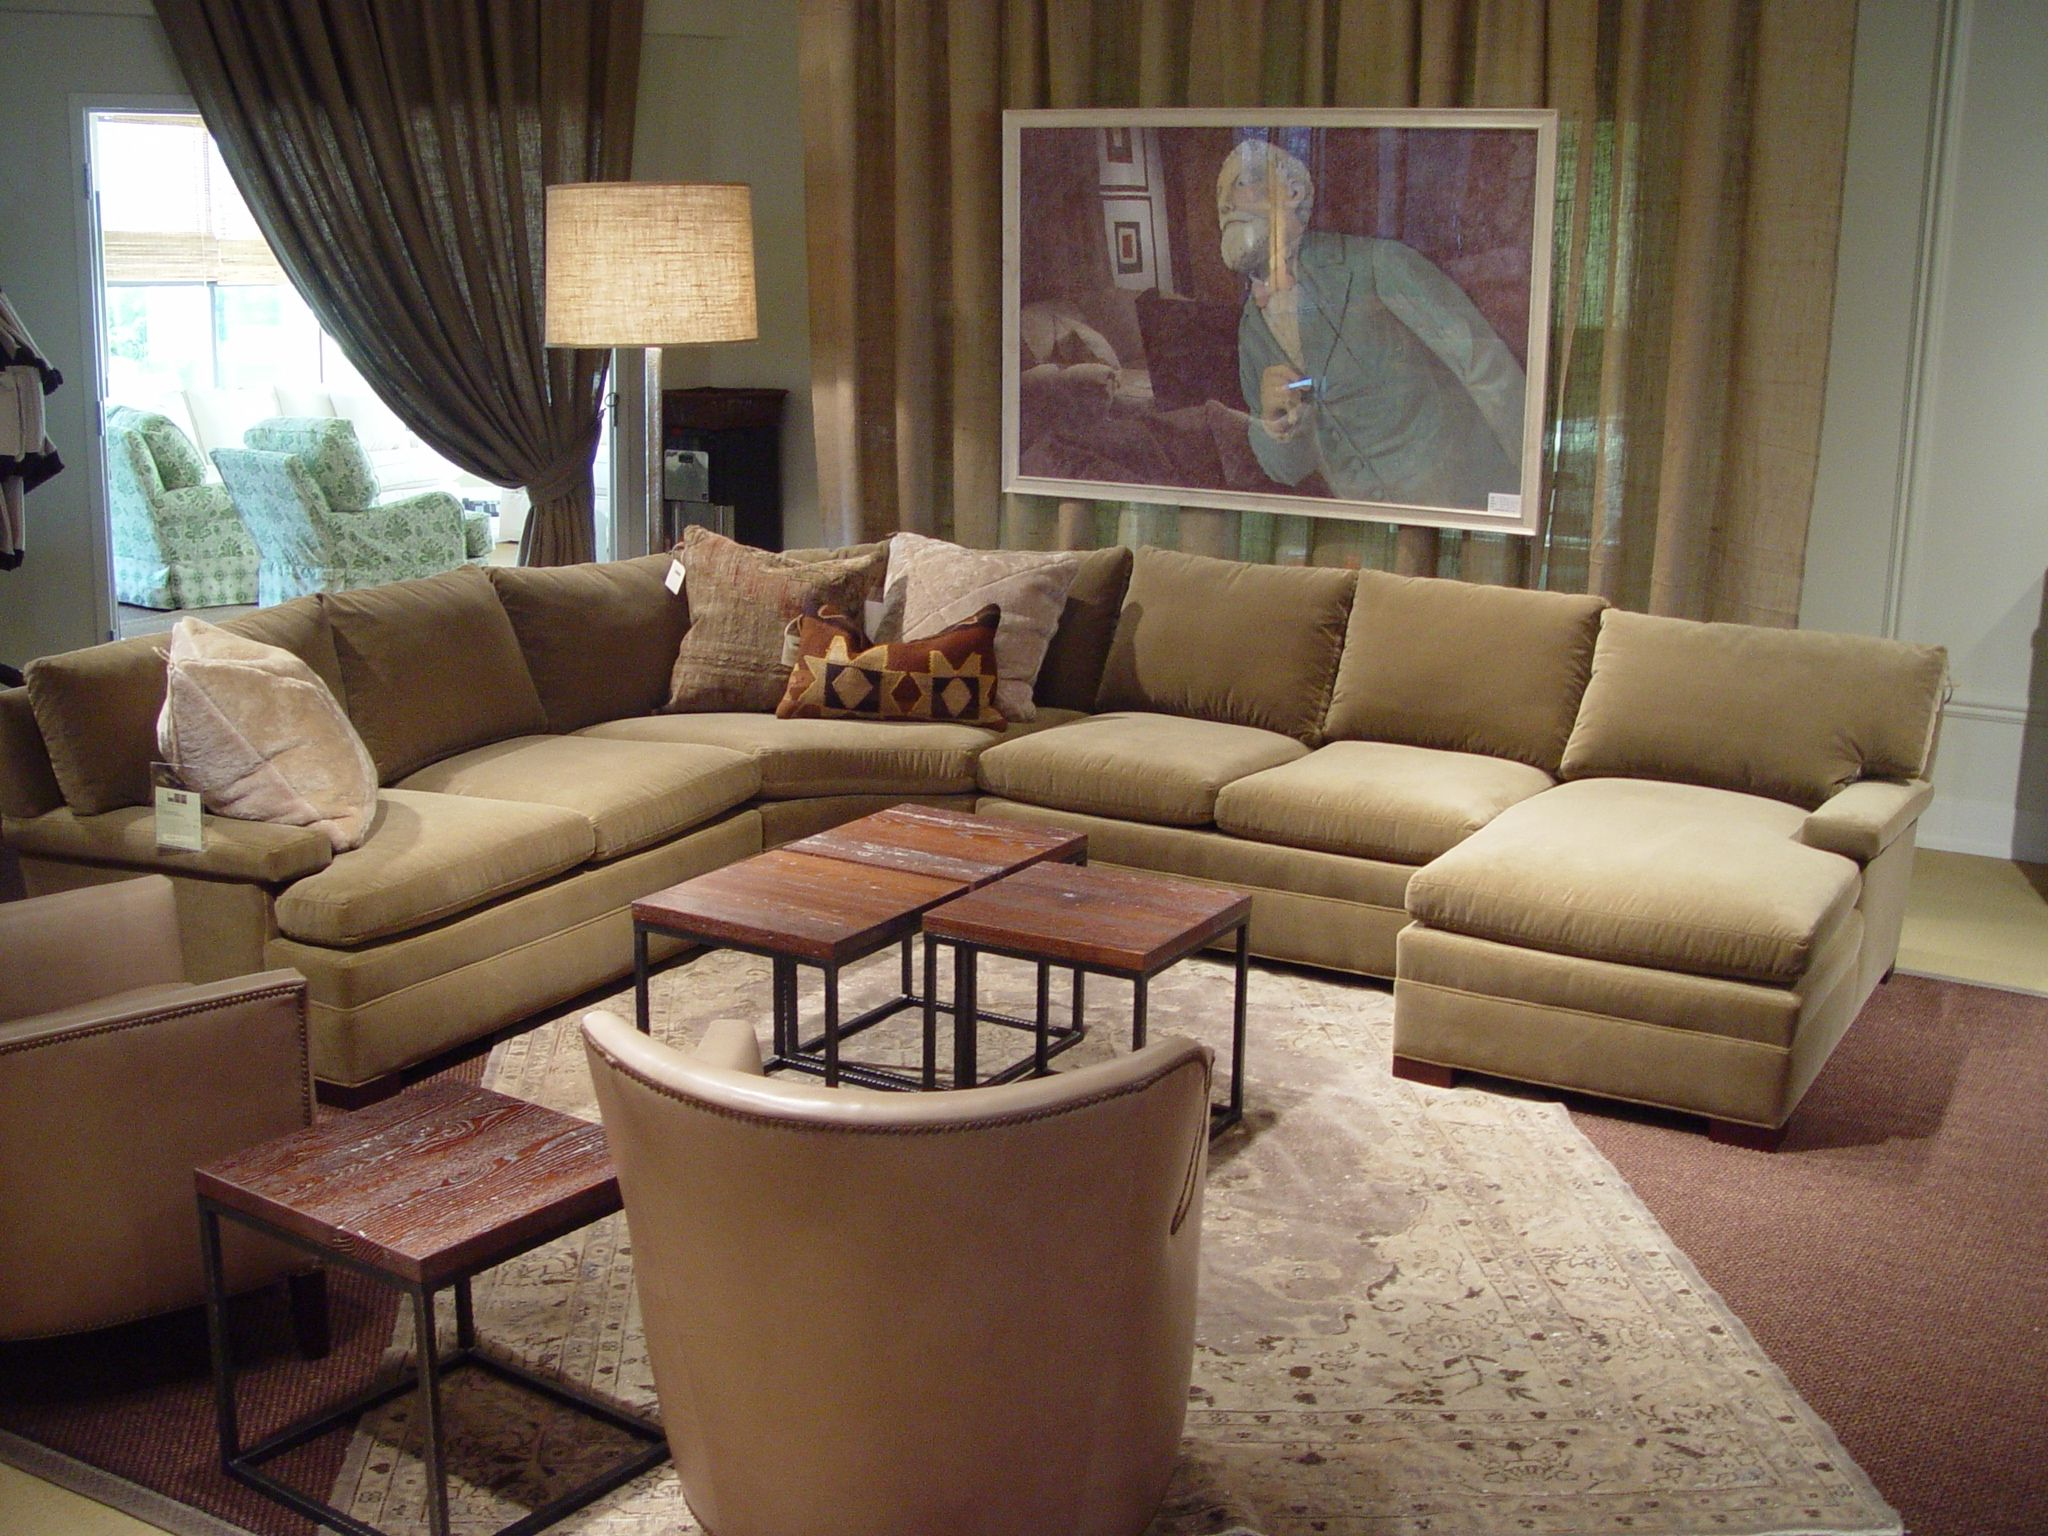 Smith Brothers 393 Traditional 3-piece Sectional Sofa With Nailhead Trim |  Couch | Pinterest | Nailhead Trim, Sectional Sofa And Furniture Mattress